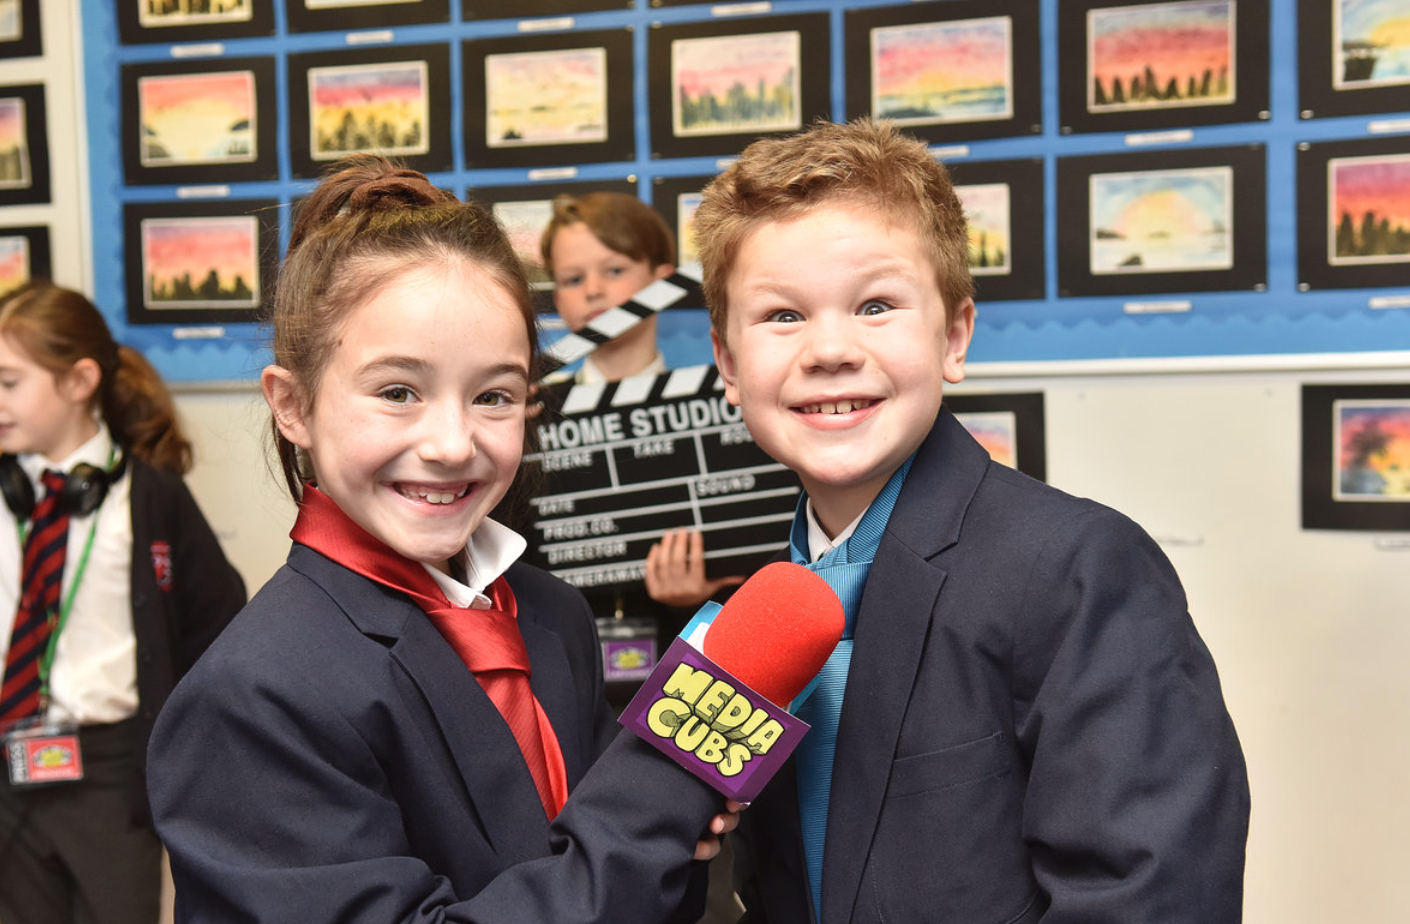 Meet the Manchester kids taking on the Prime Minister and Government, The Manc